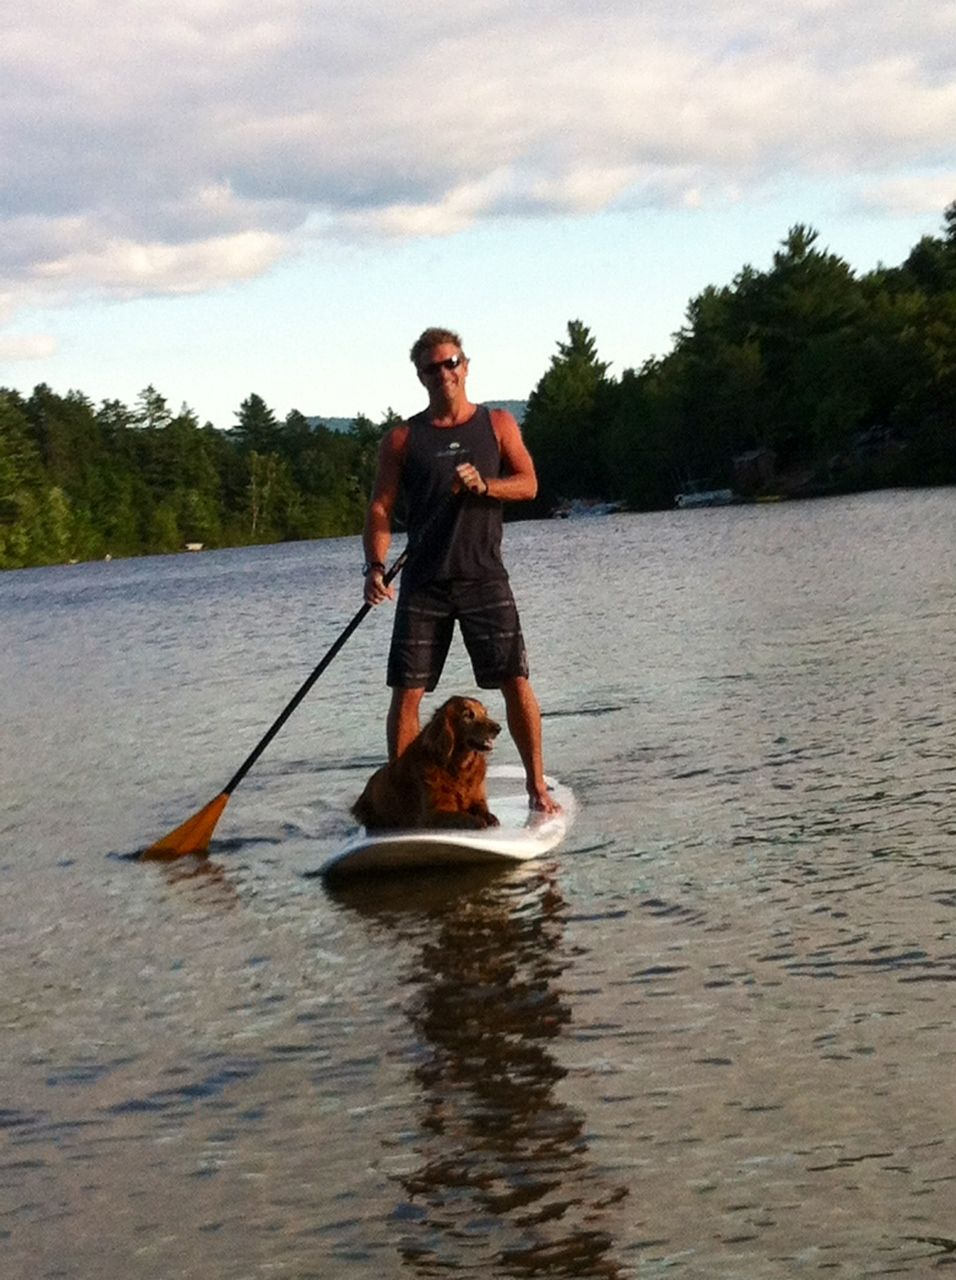 Get in on the LLBean Stand-Up Paddleboard fitness craze (and bring along your furry best friend!)